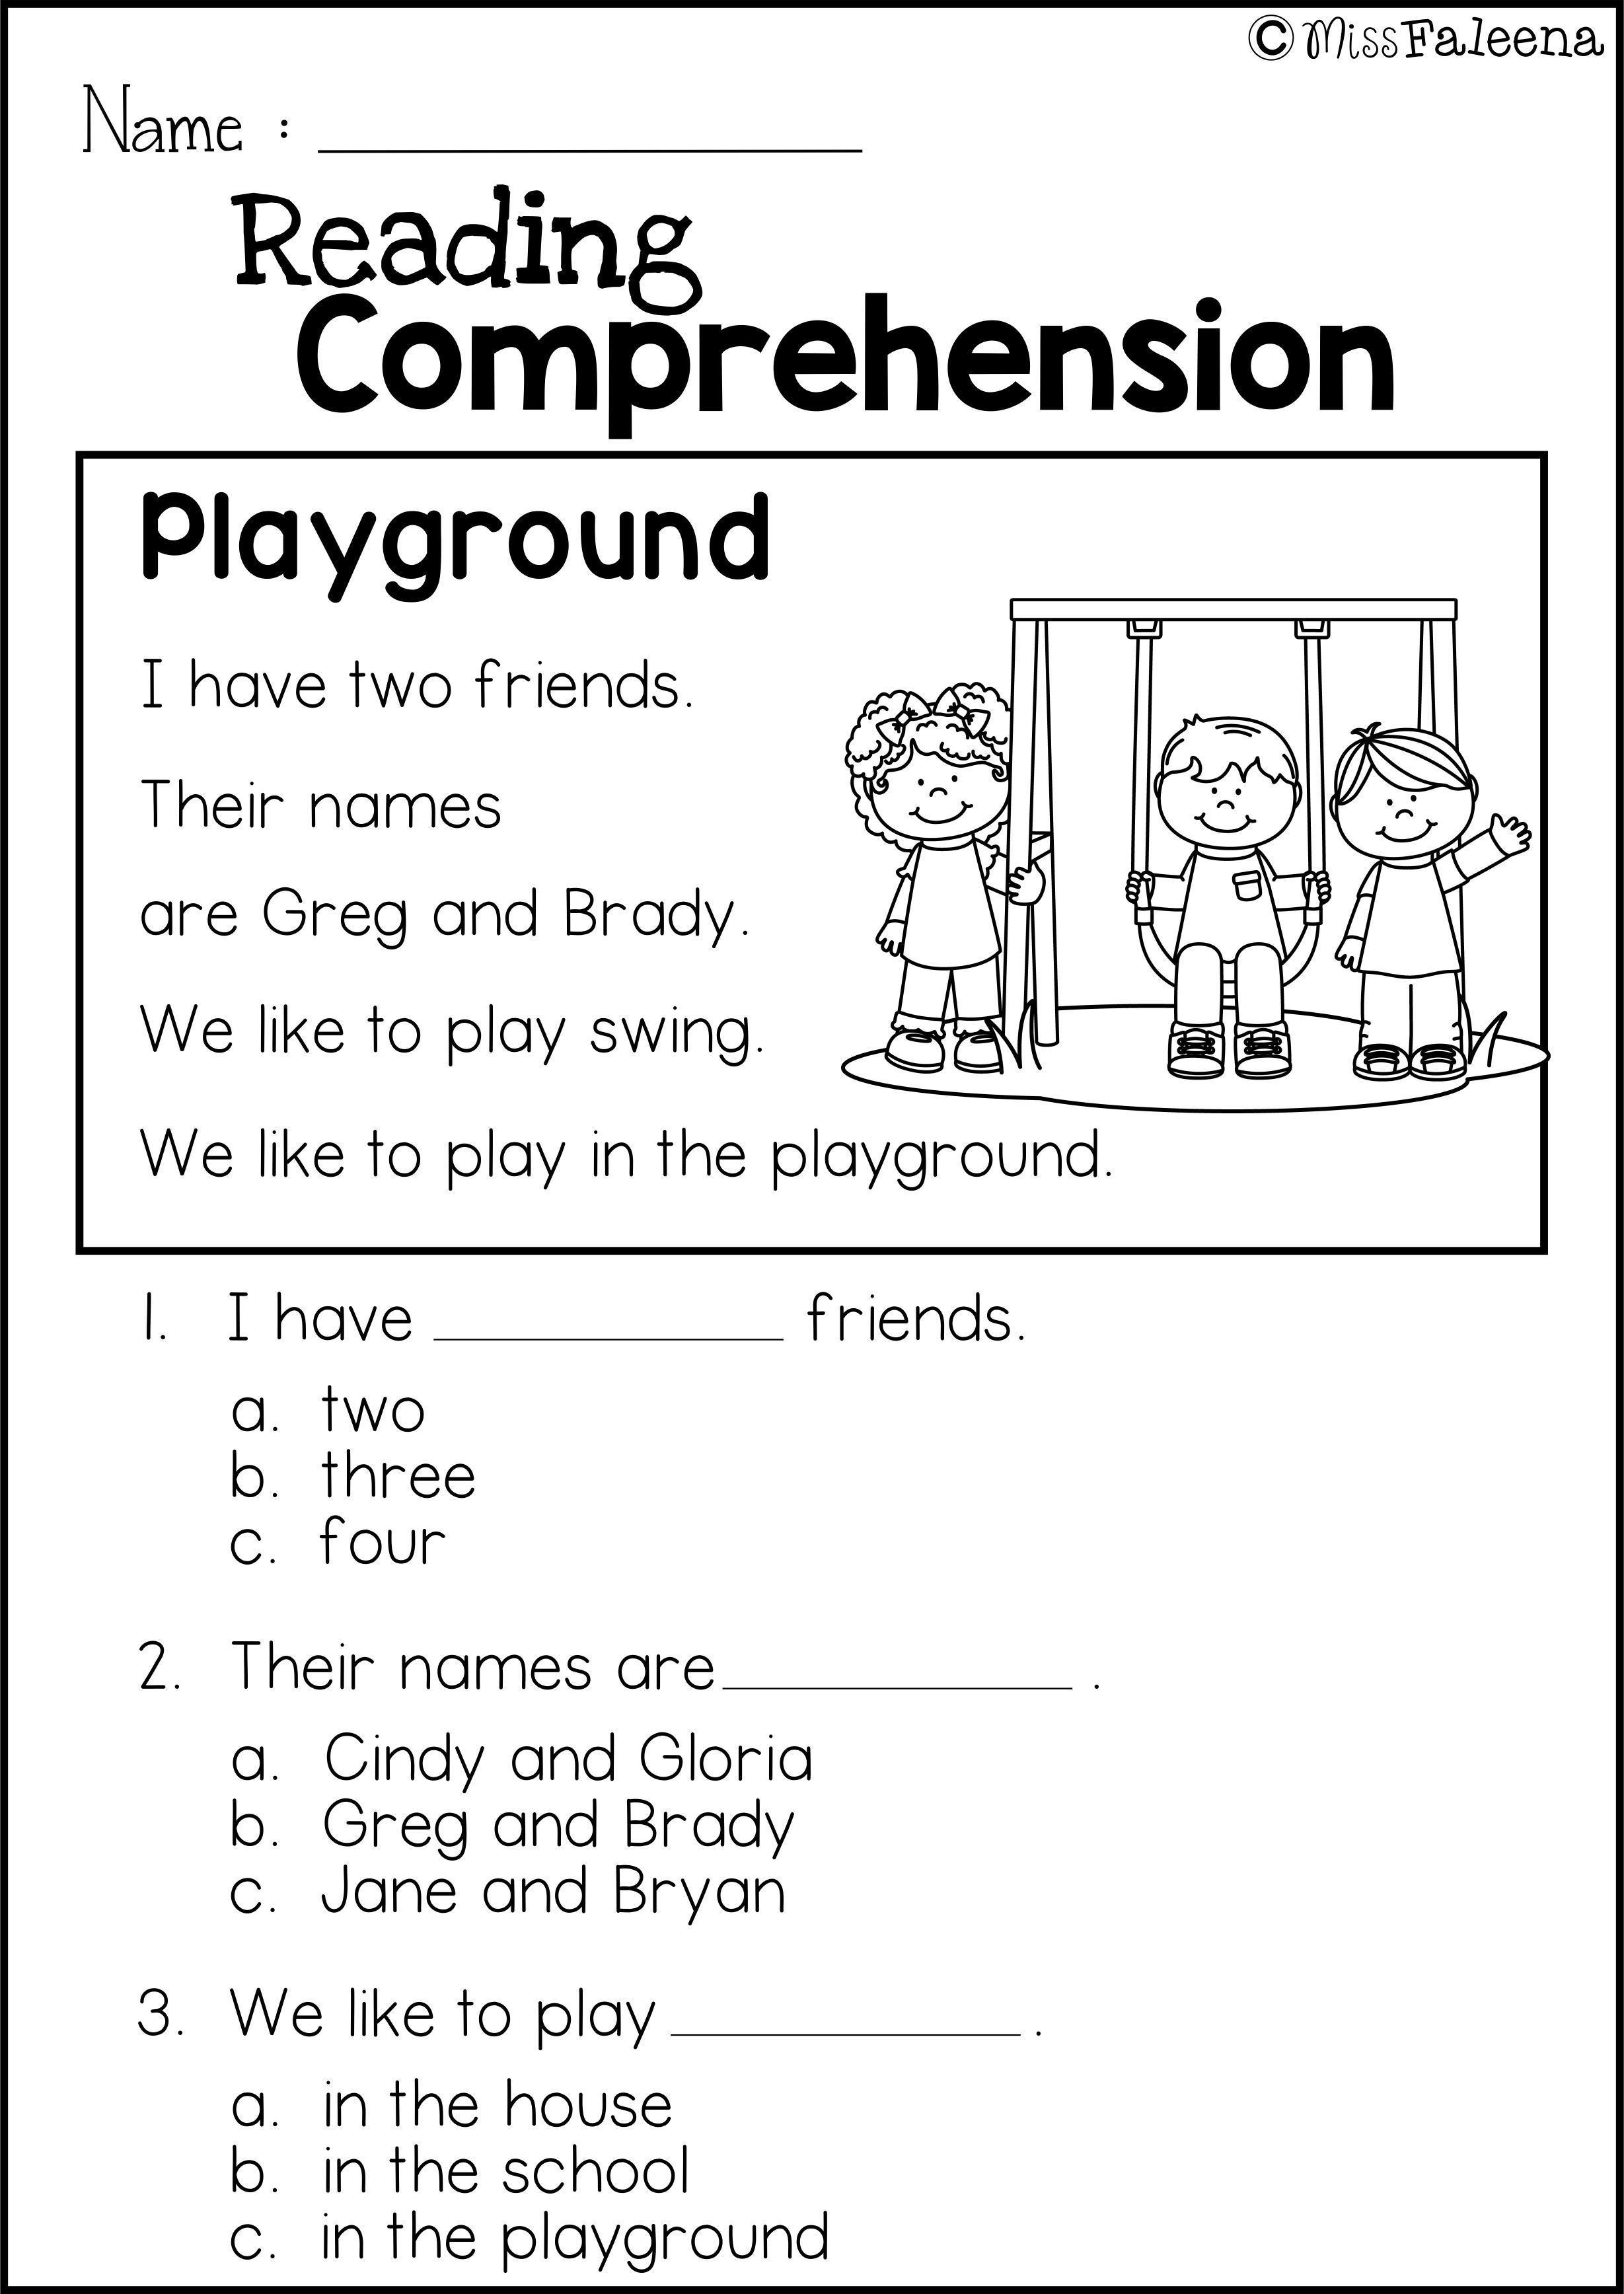 Free Reading Comprehension Practice